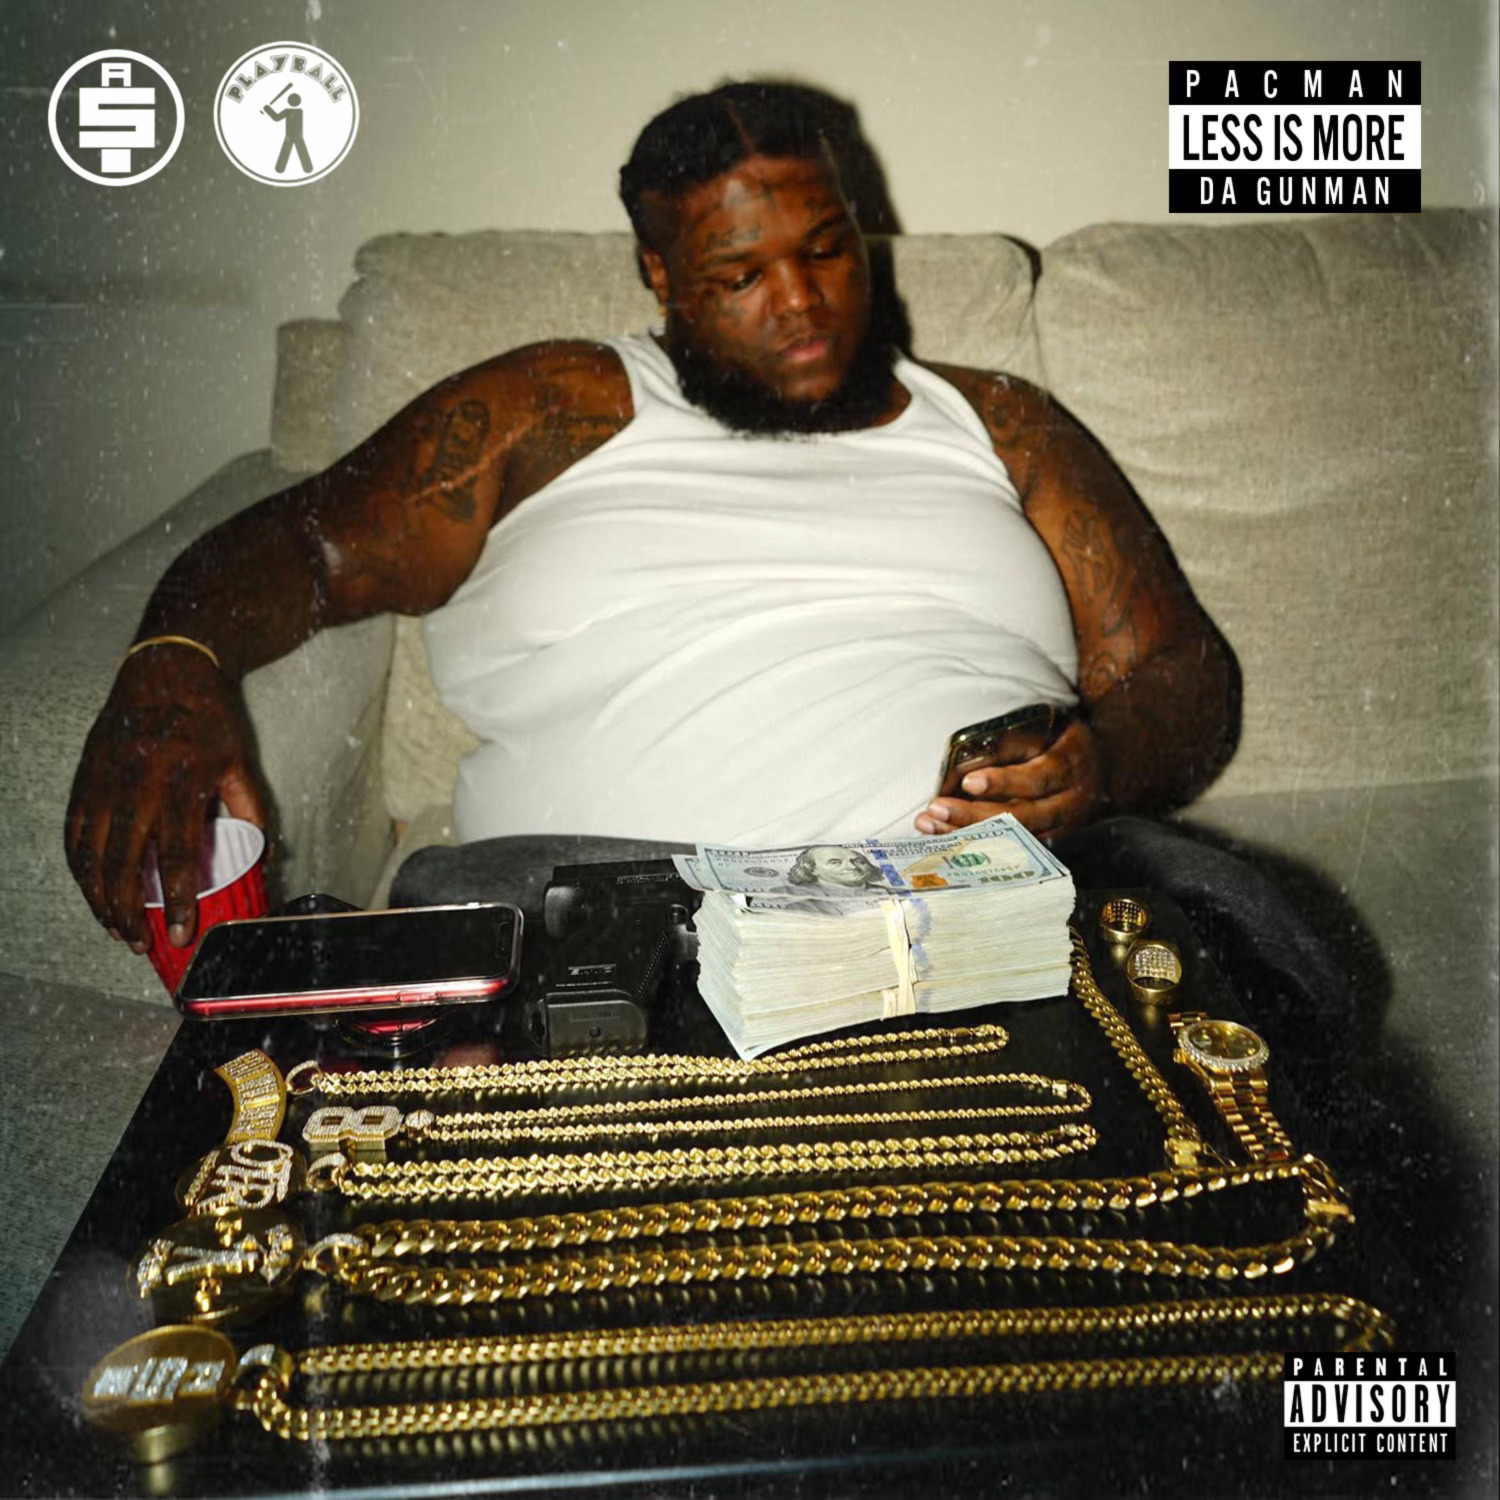 Pacman Da Gunman Proves 'Less Is More' On New EP With Wale, Mozzy + More